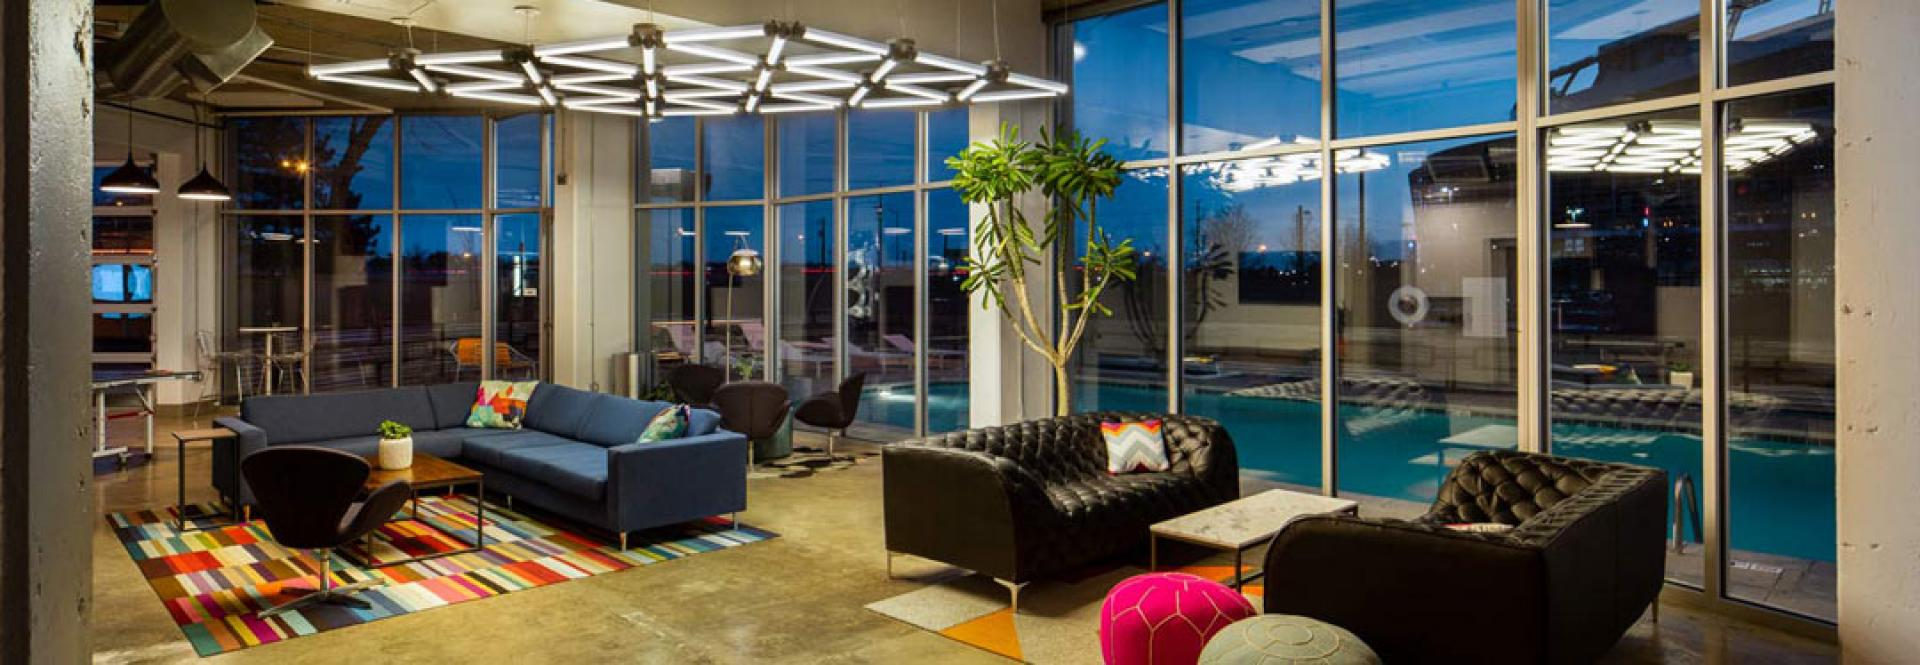 Lounge and Pool at Turntable Studios